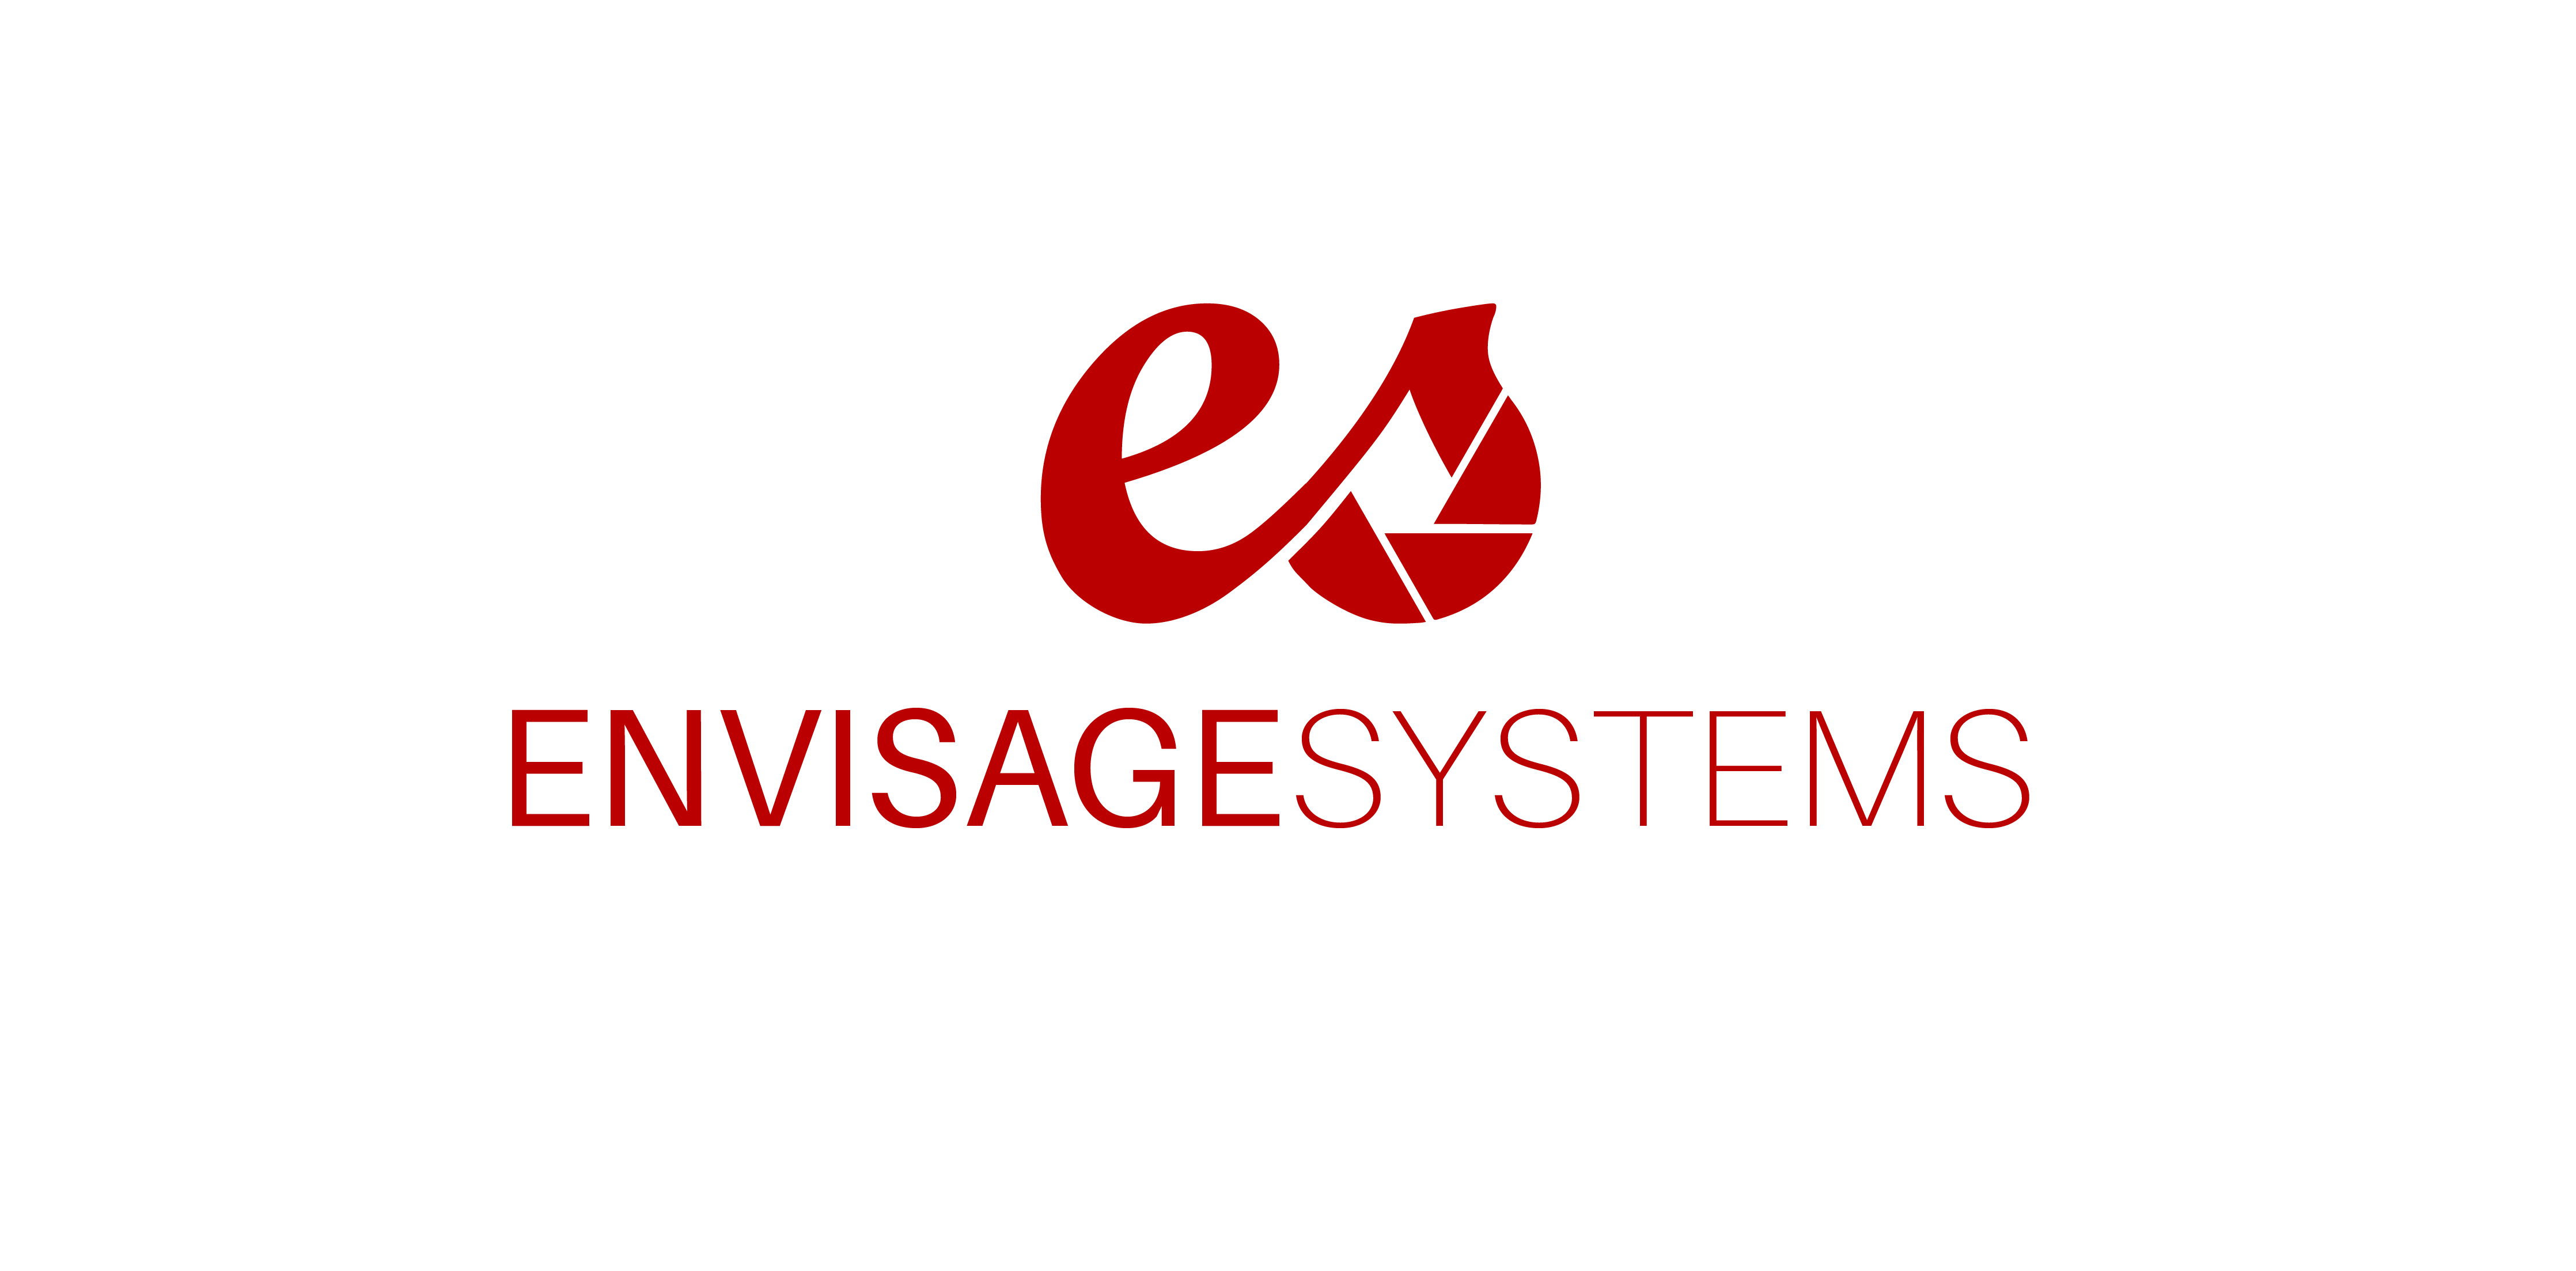 Envisage Vision Systems